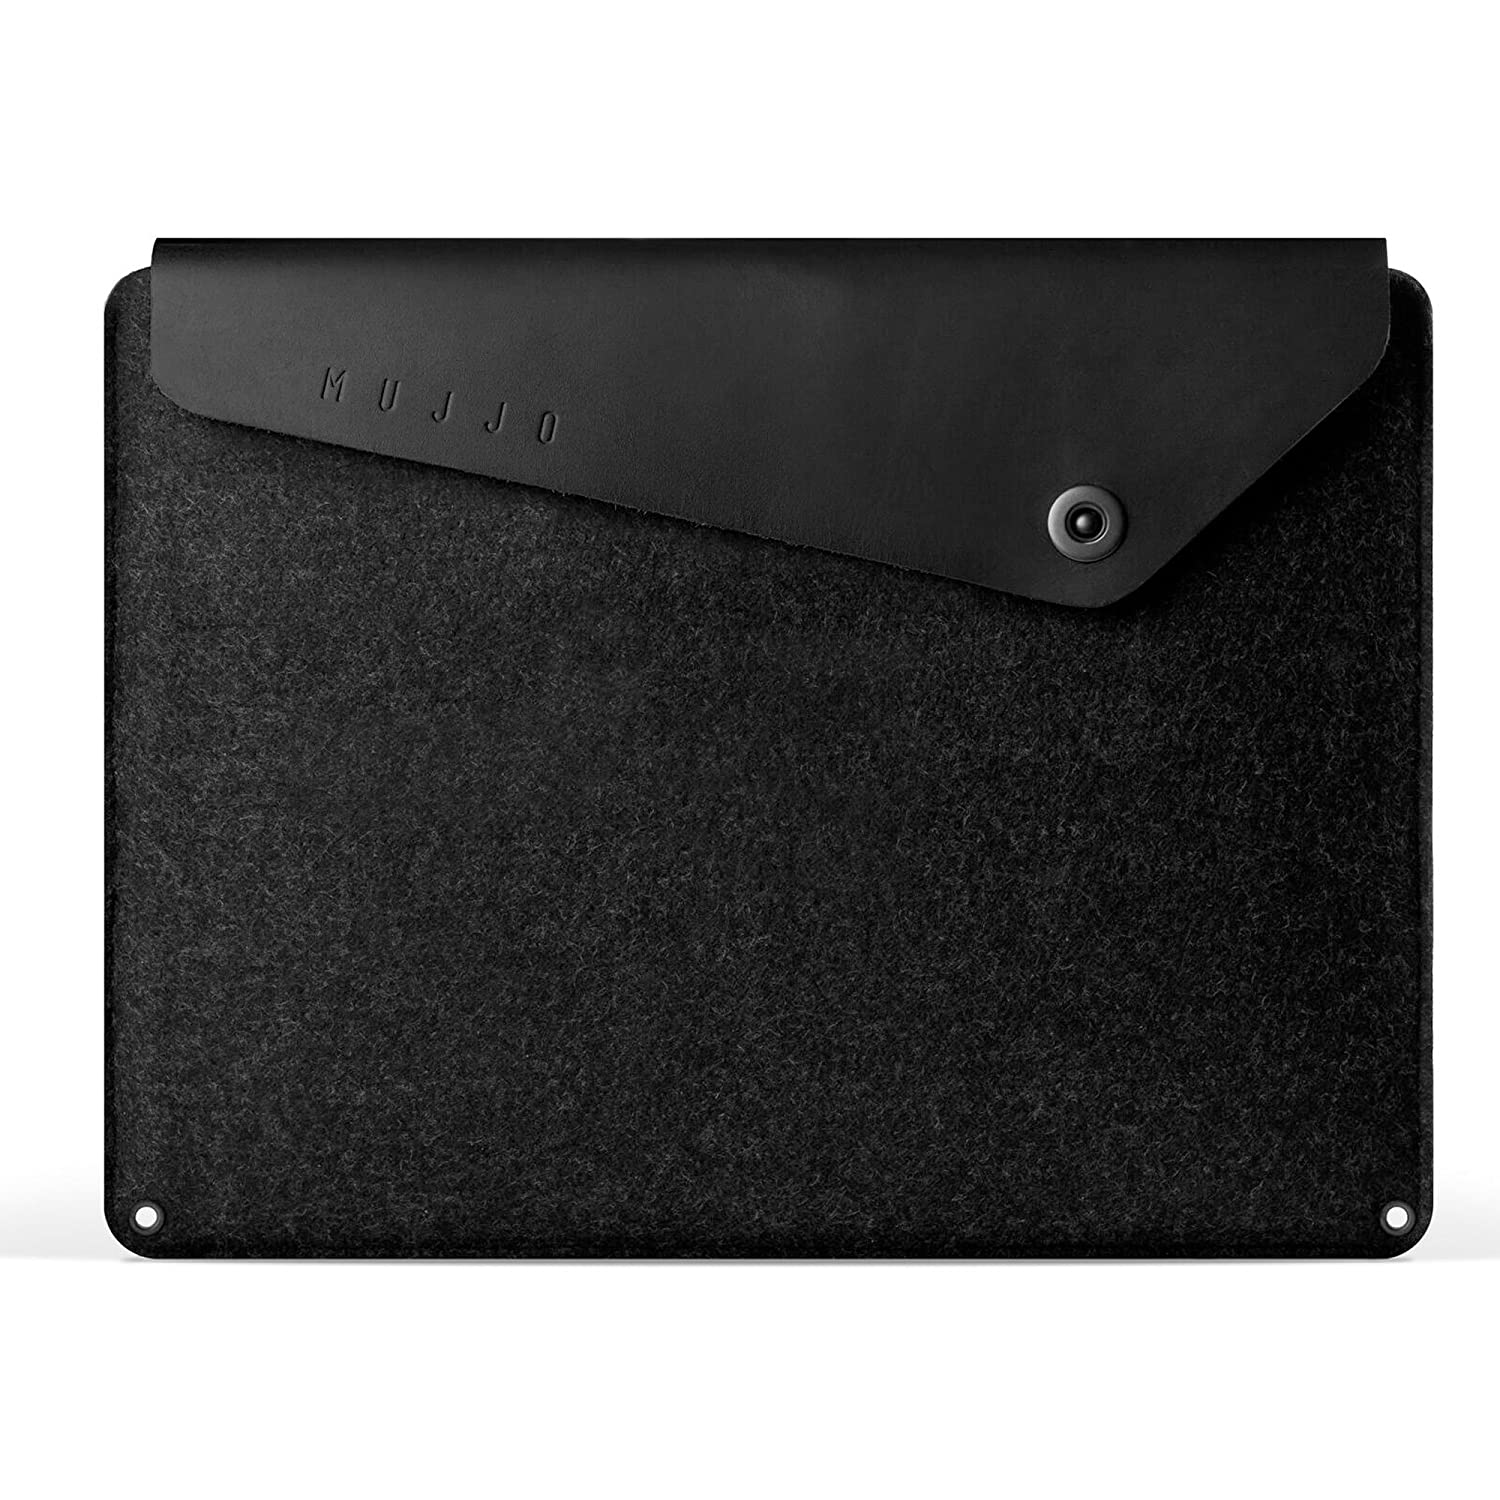 reputable site 0156a b9803 Mujjo Leather Sleeve for 13-inch MacBook Pro (3rd 4th Gen), MacBook Air  2018, 12.9